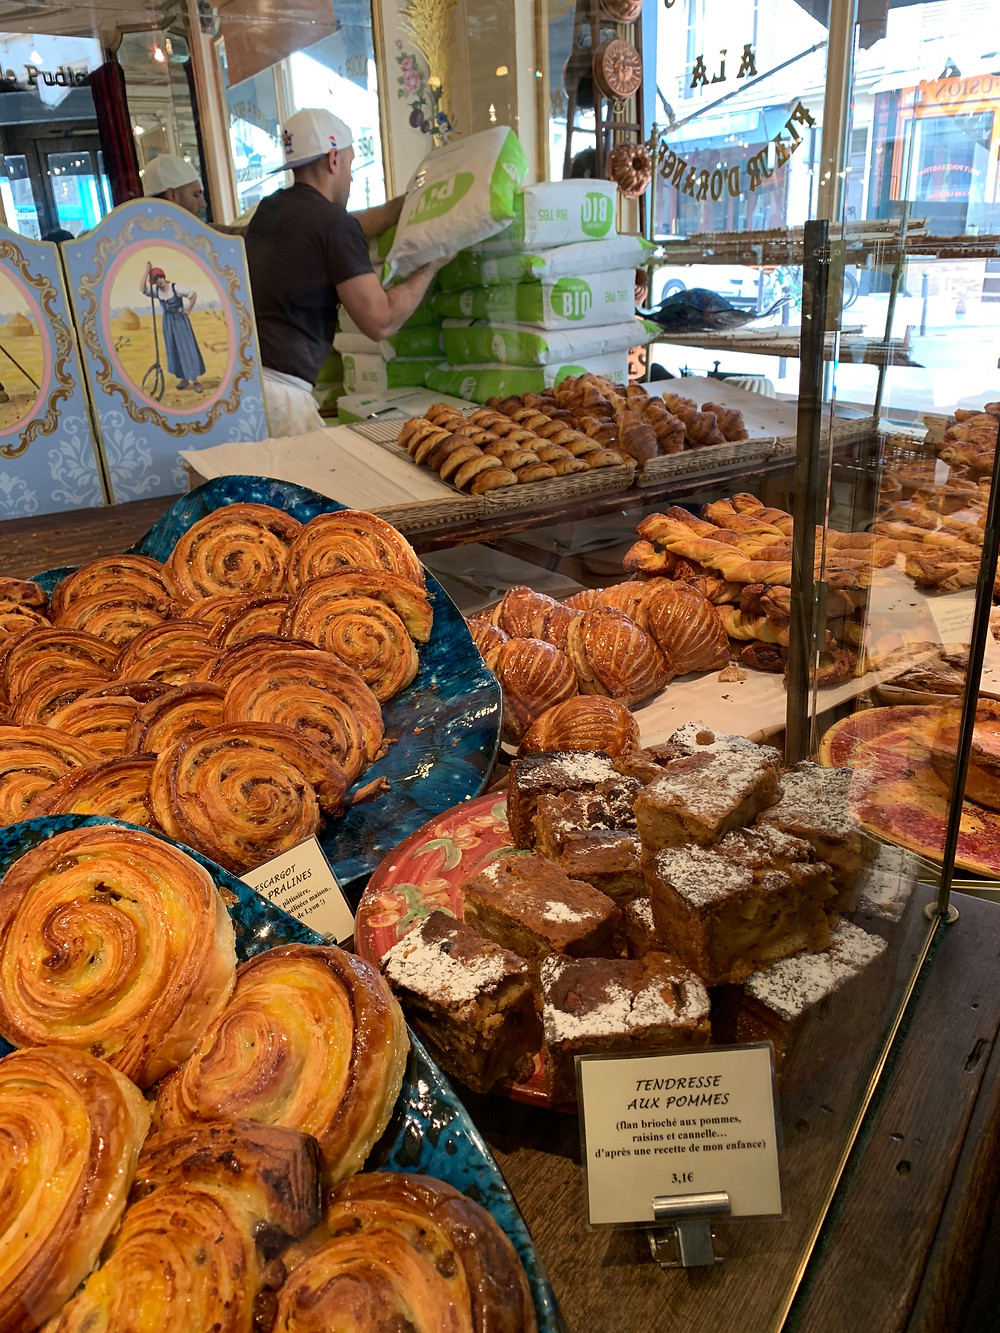 Pastries for days